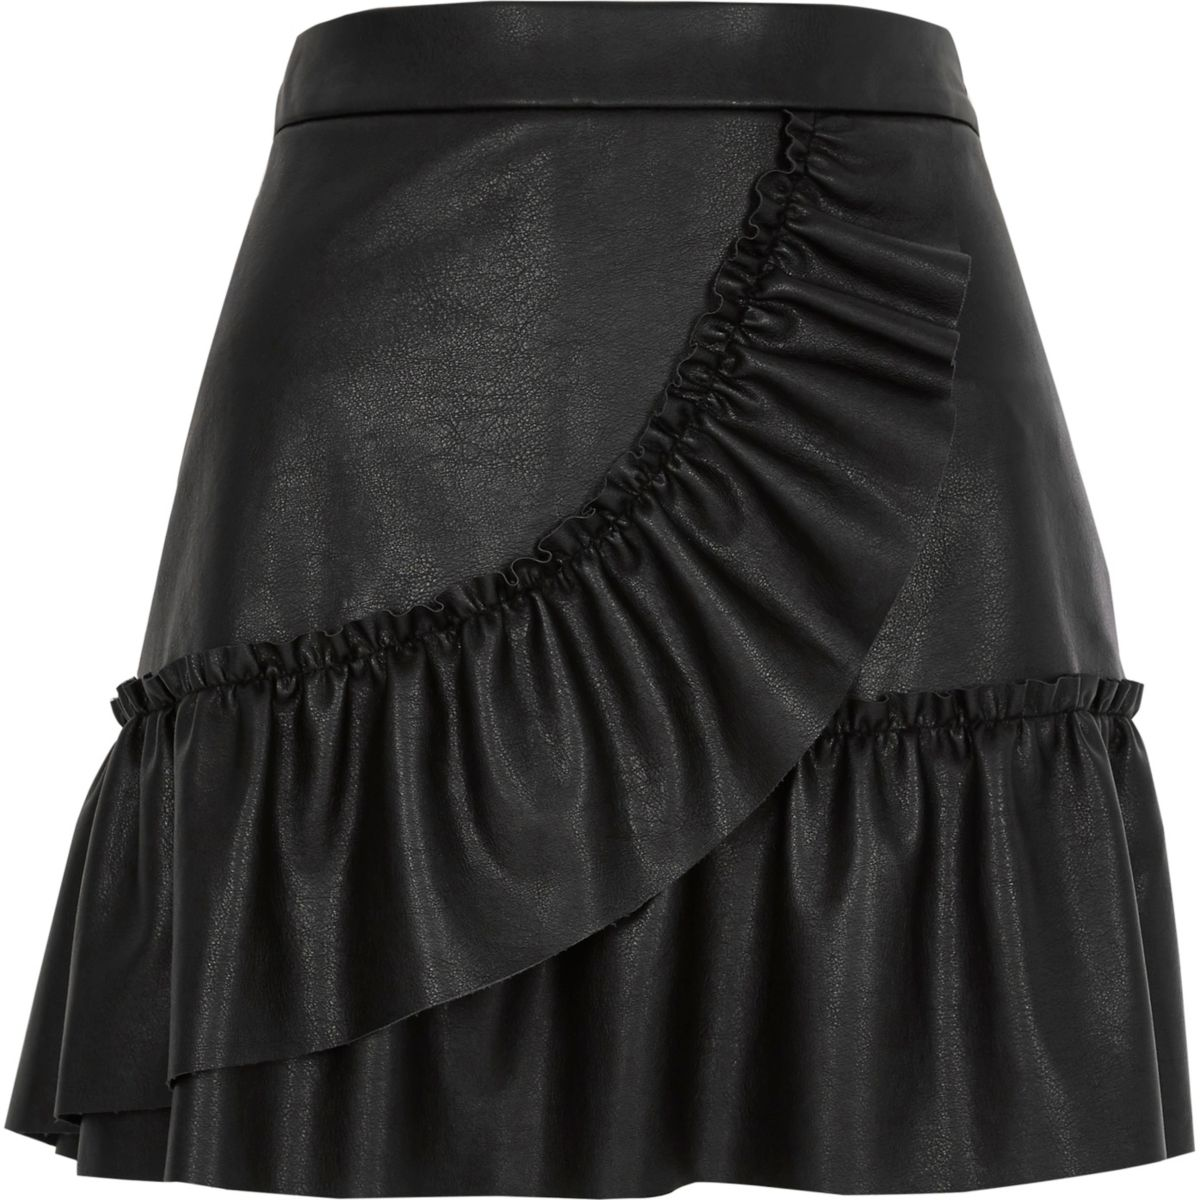 Find great deals on eBay for black frill skirt and black ruffle skirt. Shop with confidence.